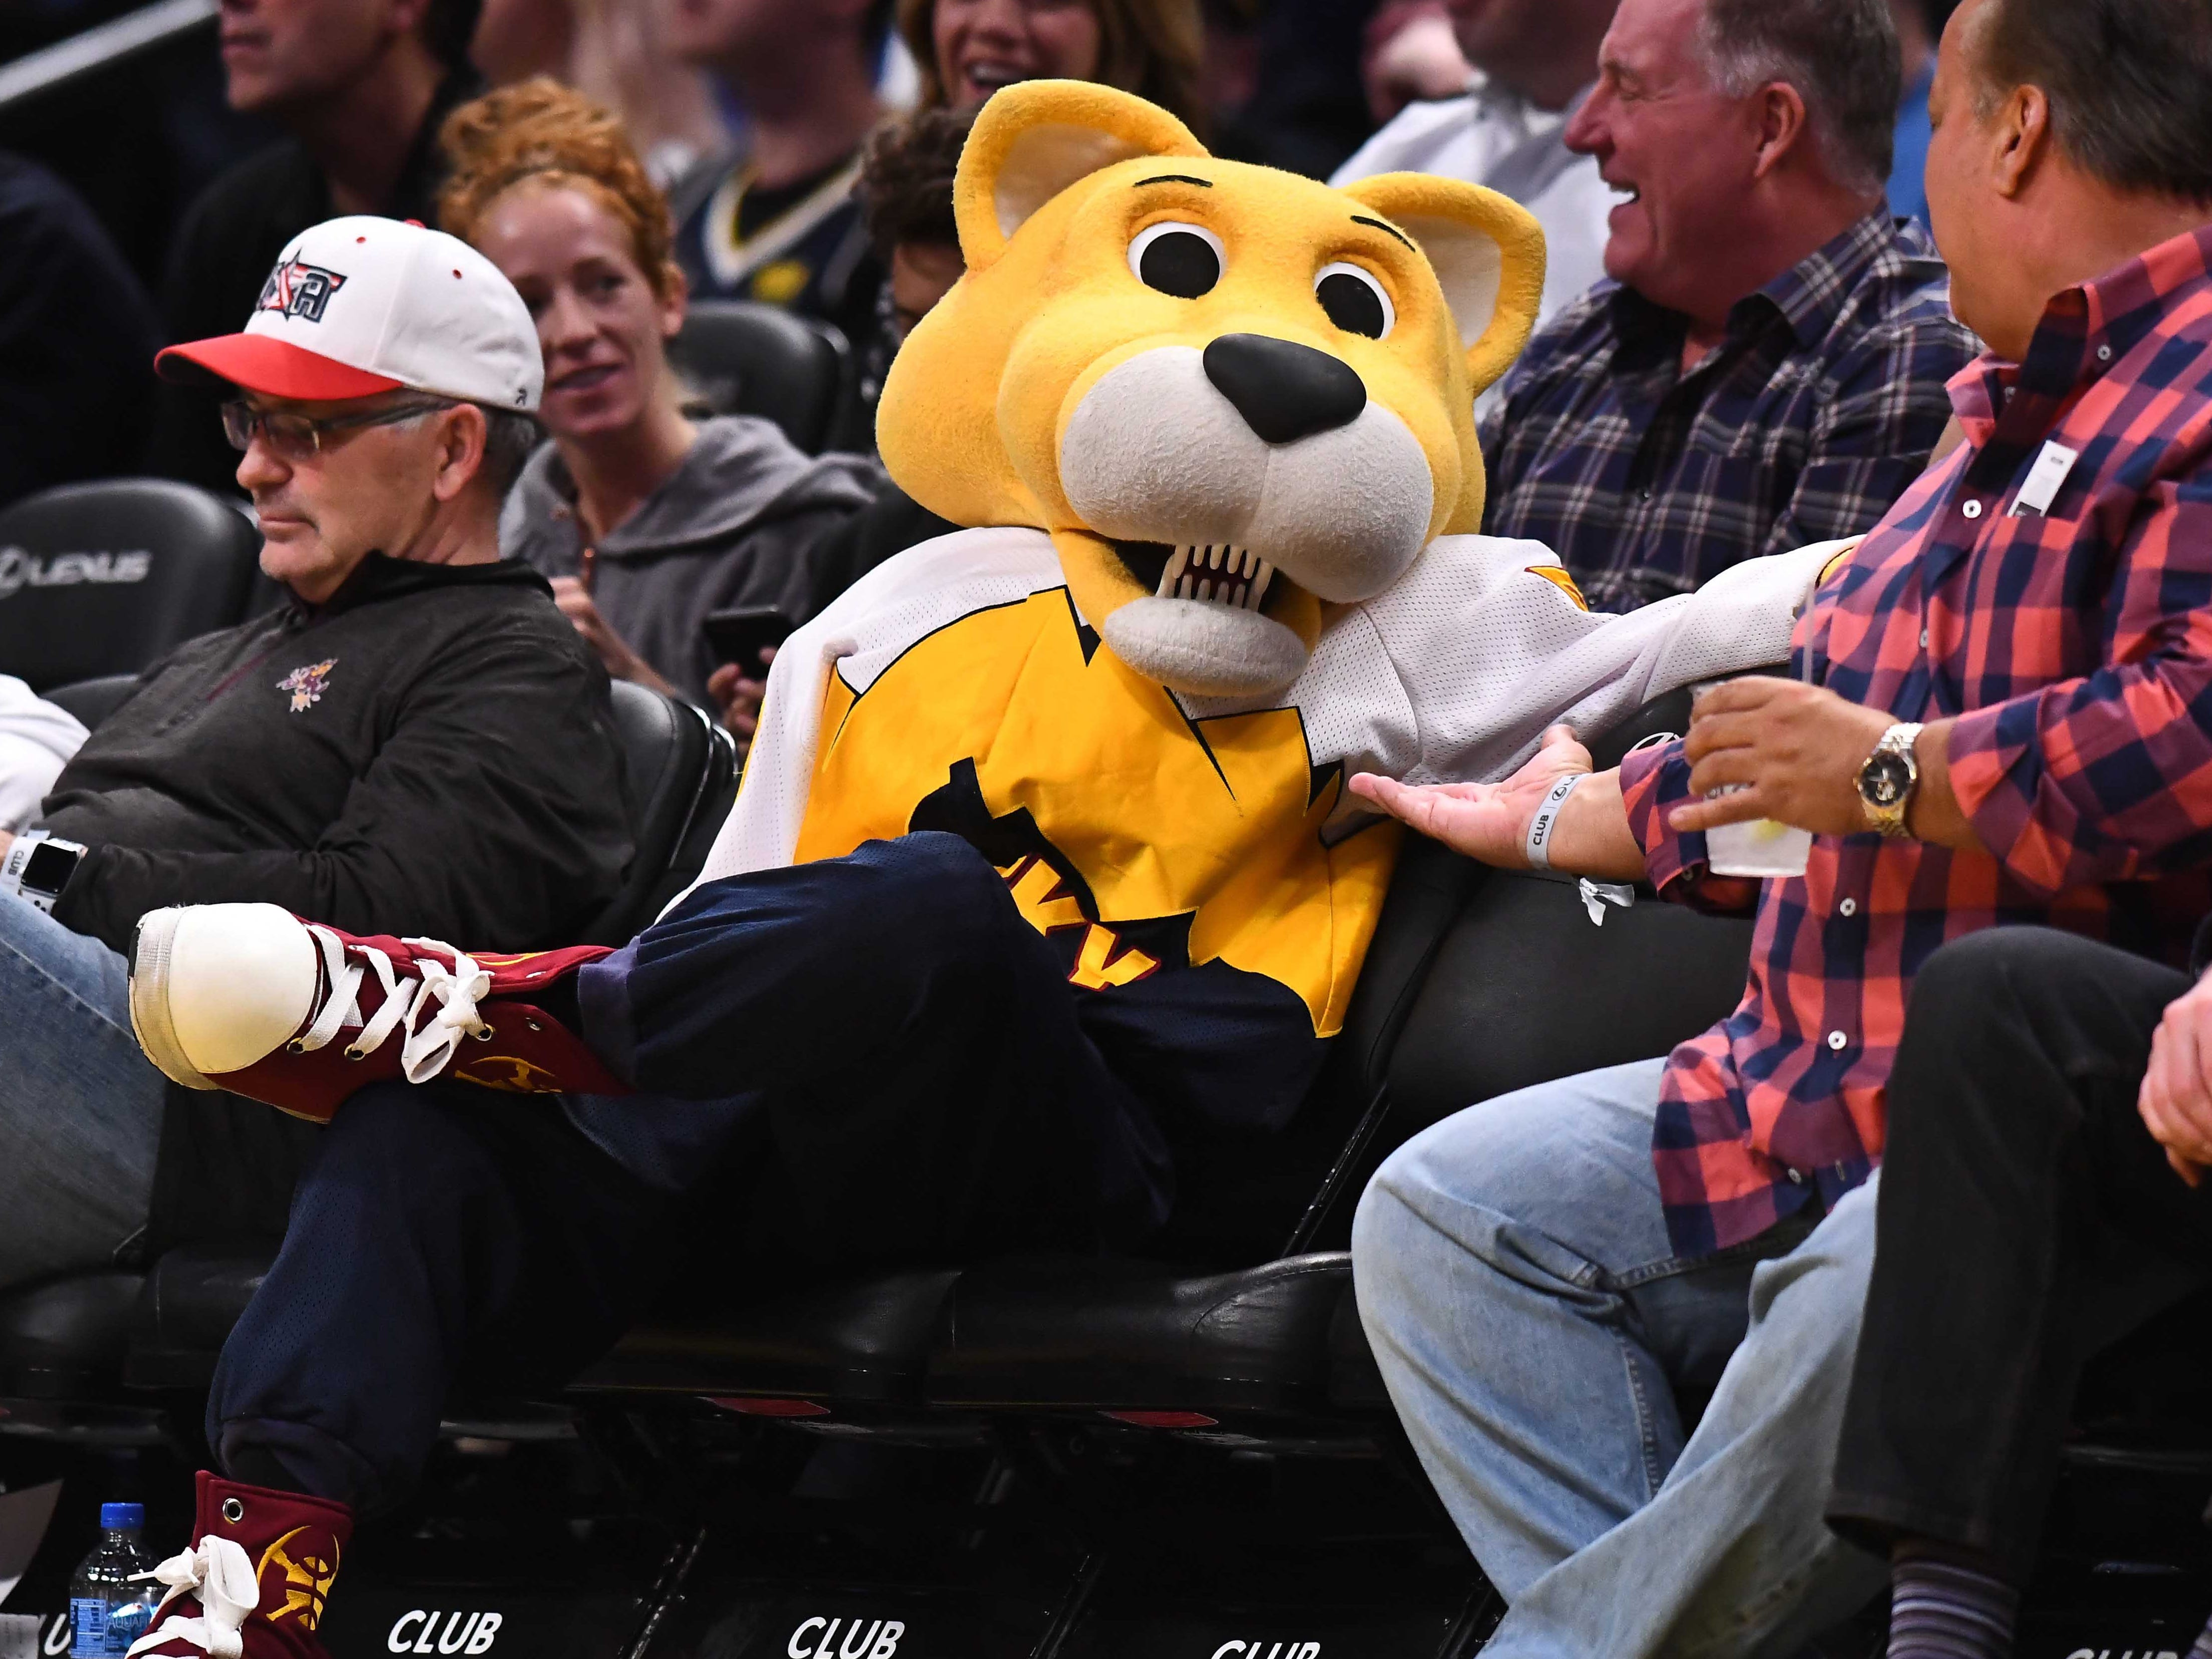 Jan. 5: Nuggets mascot Rocky takes a break in the courtside seats during the second half against the Hornets at the Pepsi Center.